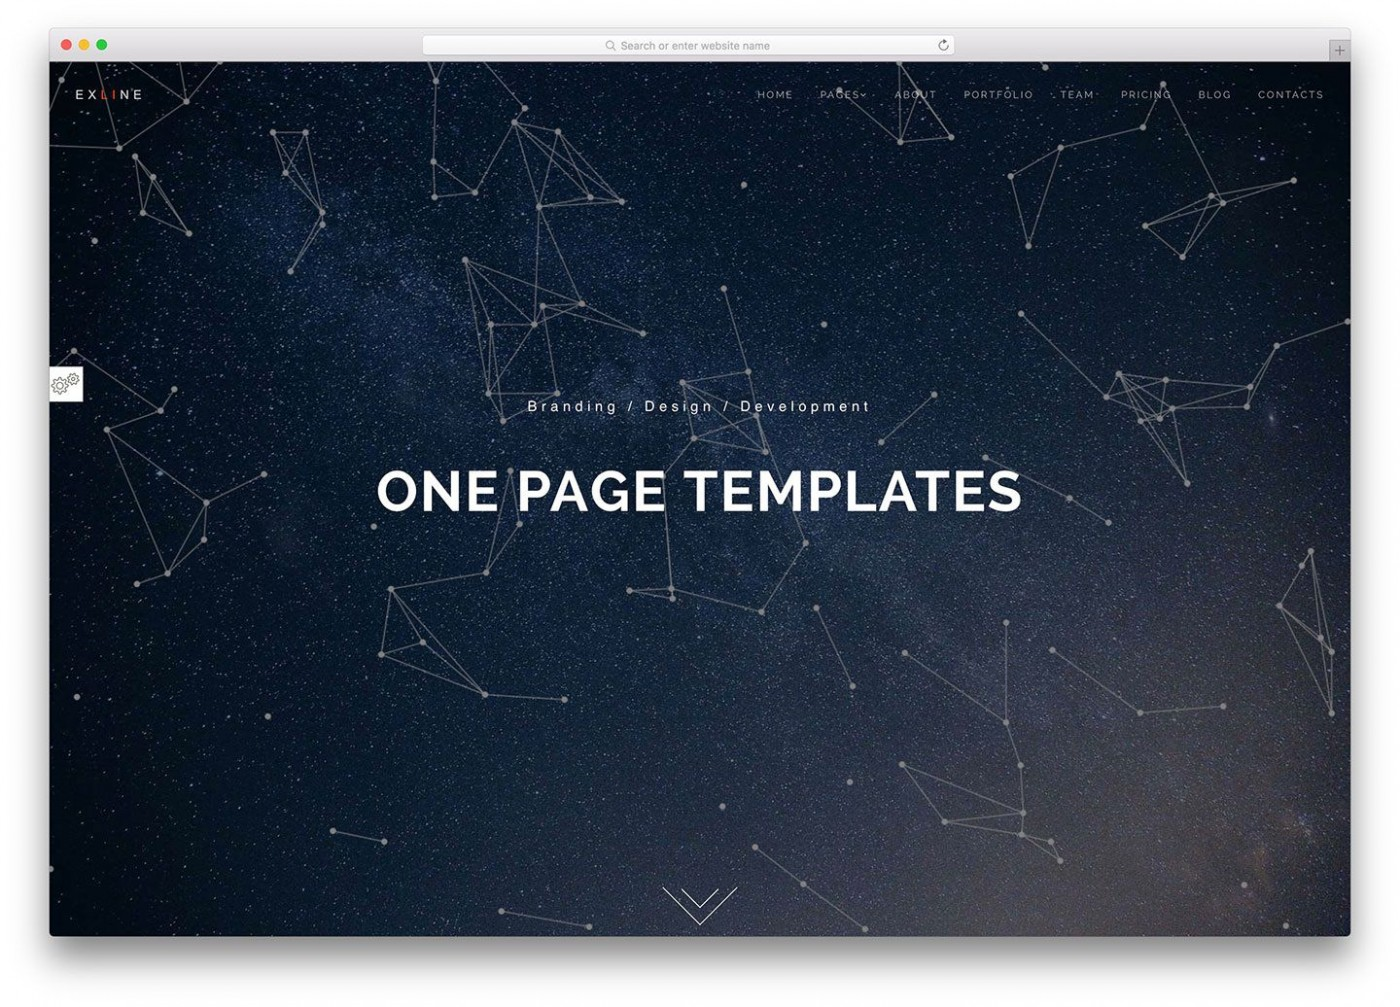 005 Incredible Simple One Page Website Template Free Download High Definition  Html With Cs1400